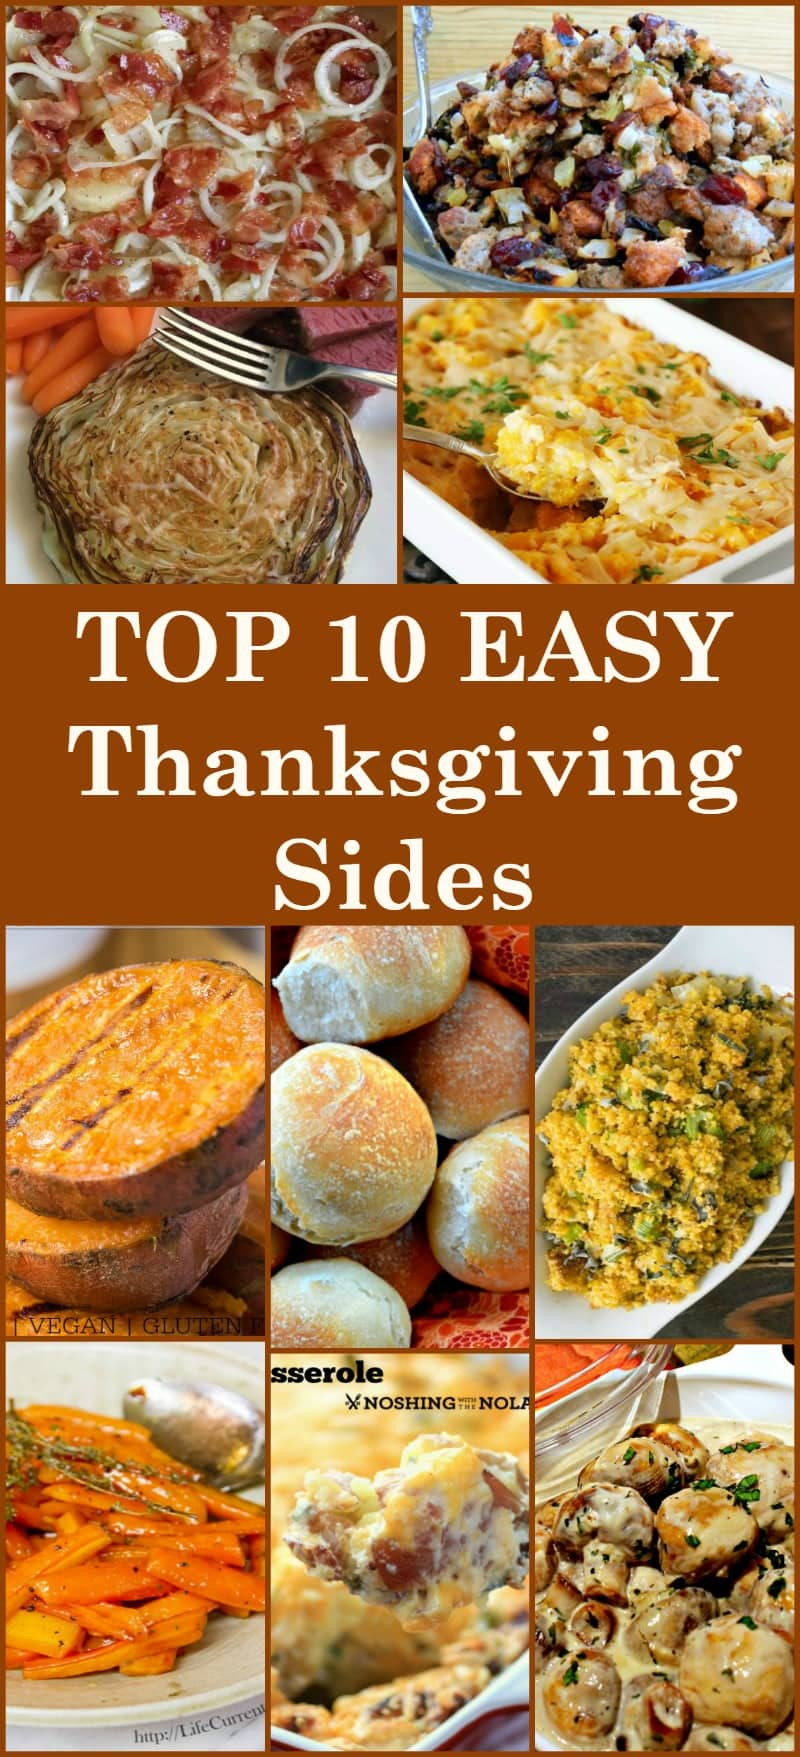 Make Ahead Thanksgiving Sides  The BEST Top 10 Thanksgiving Sides